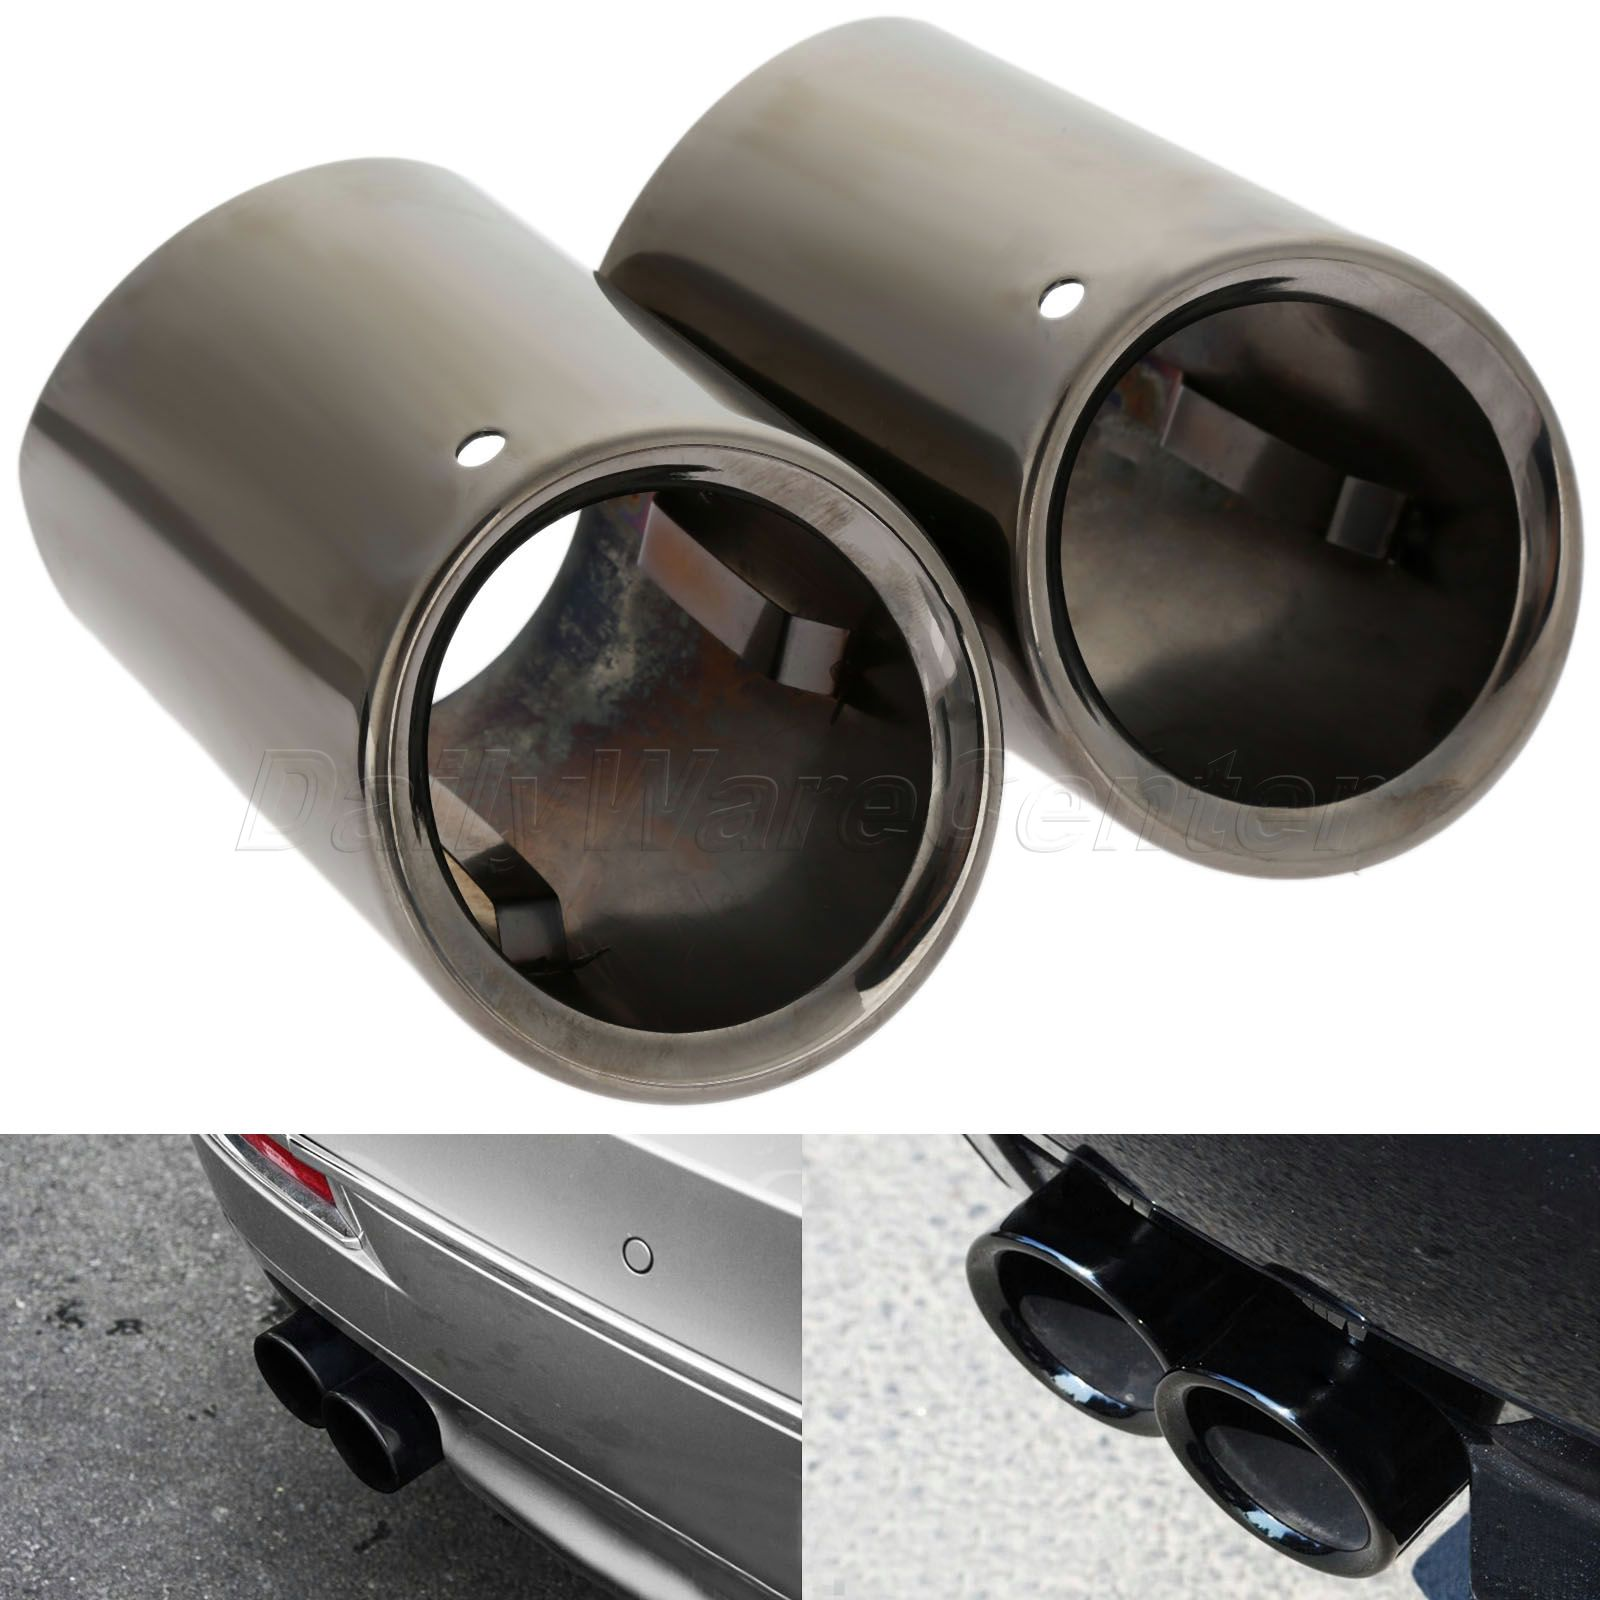 2Pcs Stainless Steel Car End Rear Muffler Exhaust Tip Pipes Tail Throat Case Tailpipe For BMW 5 Series F10 F18 520li 525li 528li stainless steel dual exhaust muffler tip tail pipe for bmw f30 320i 316i car styling